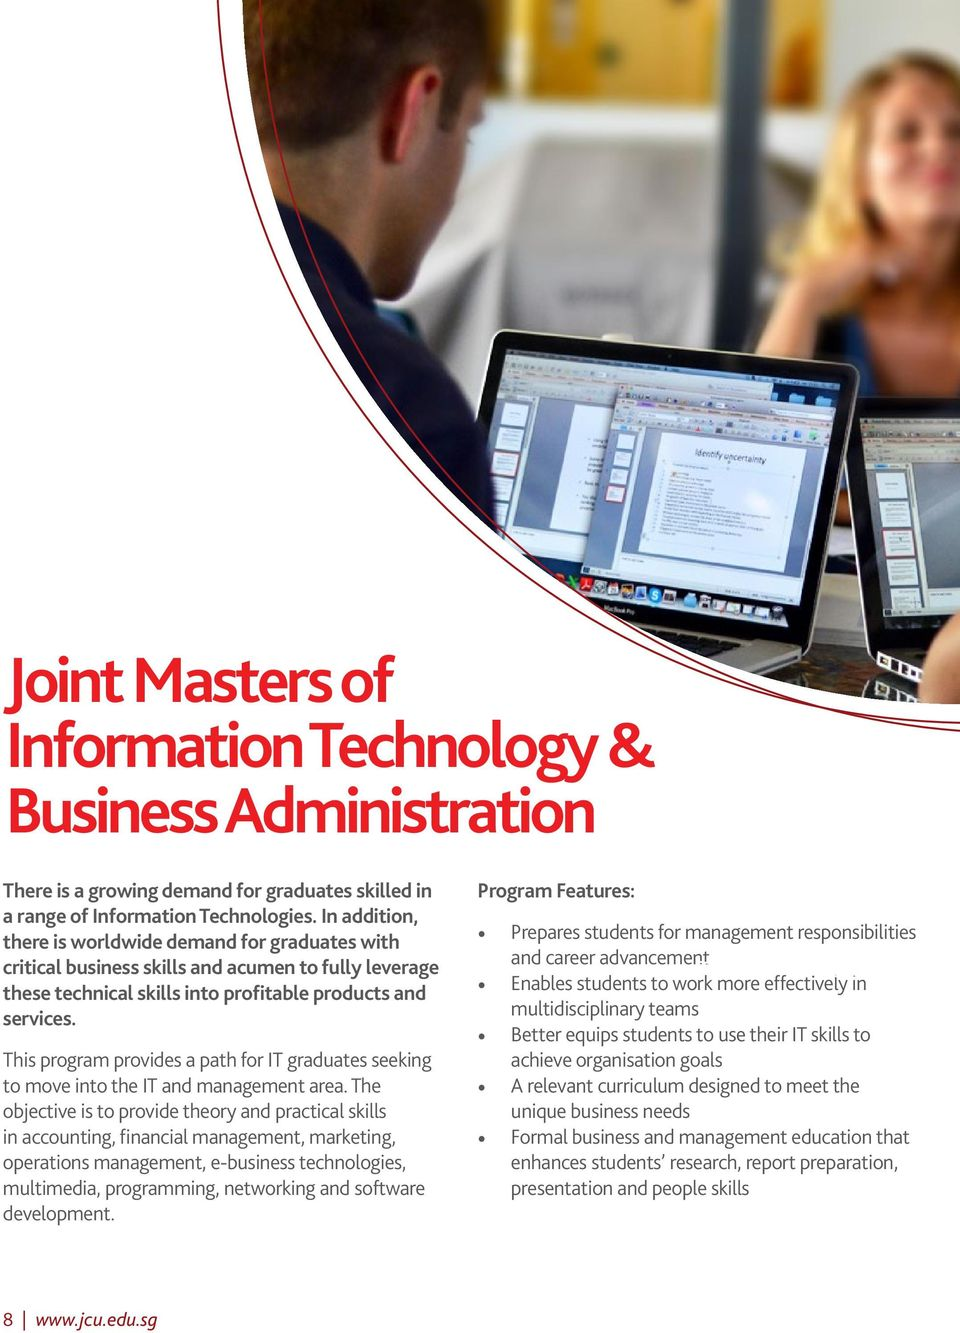 This program provides a path for IT graduates seeking to move into the IT and management area.